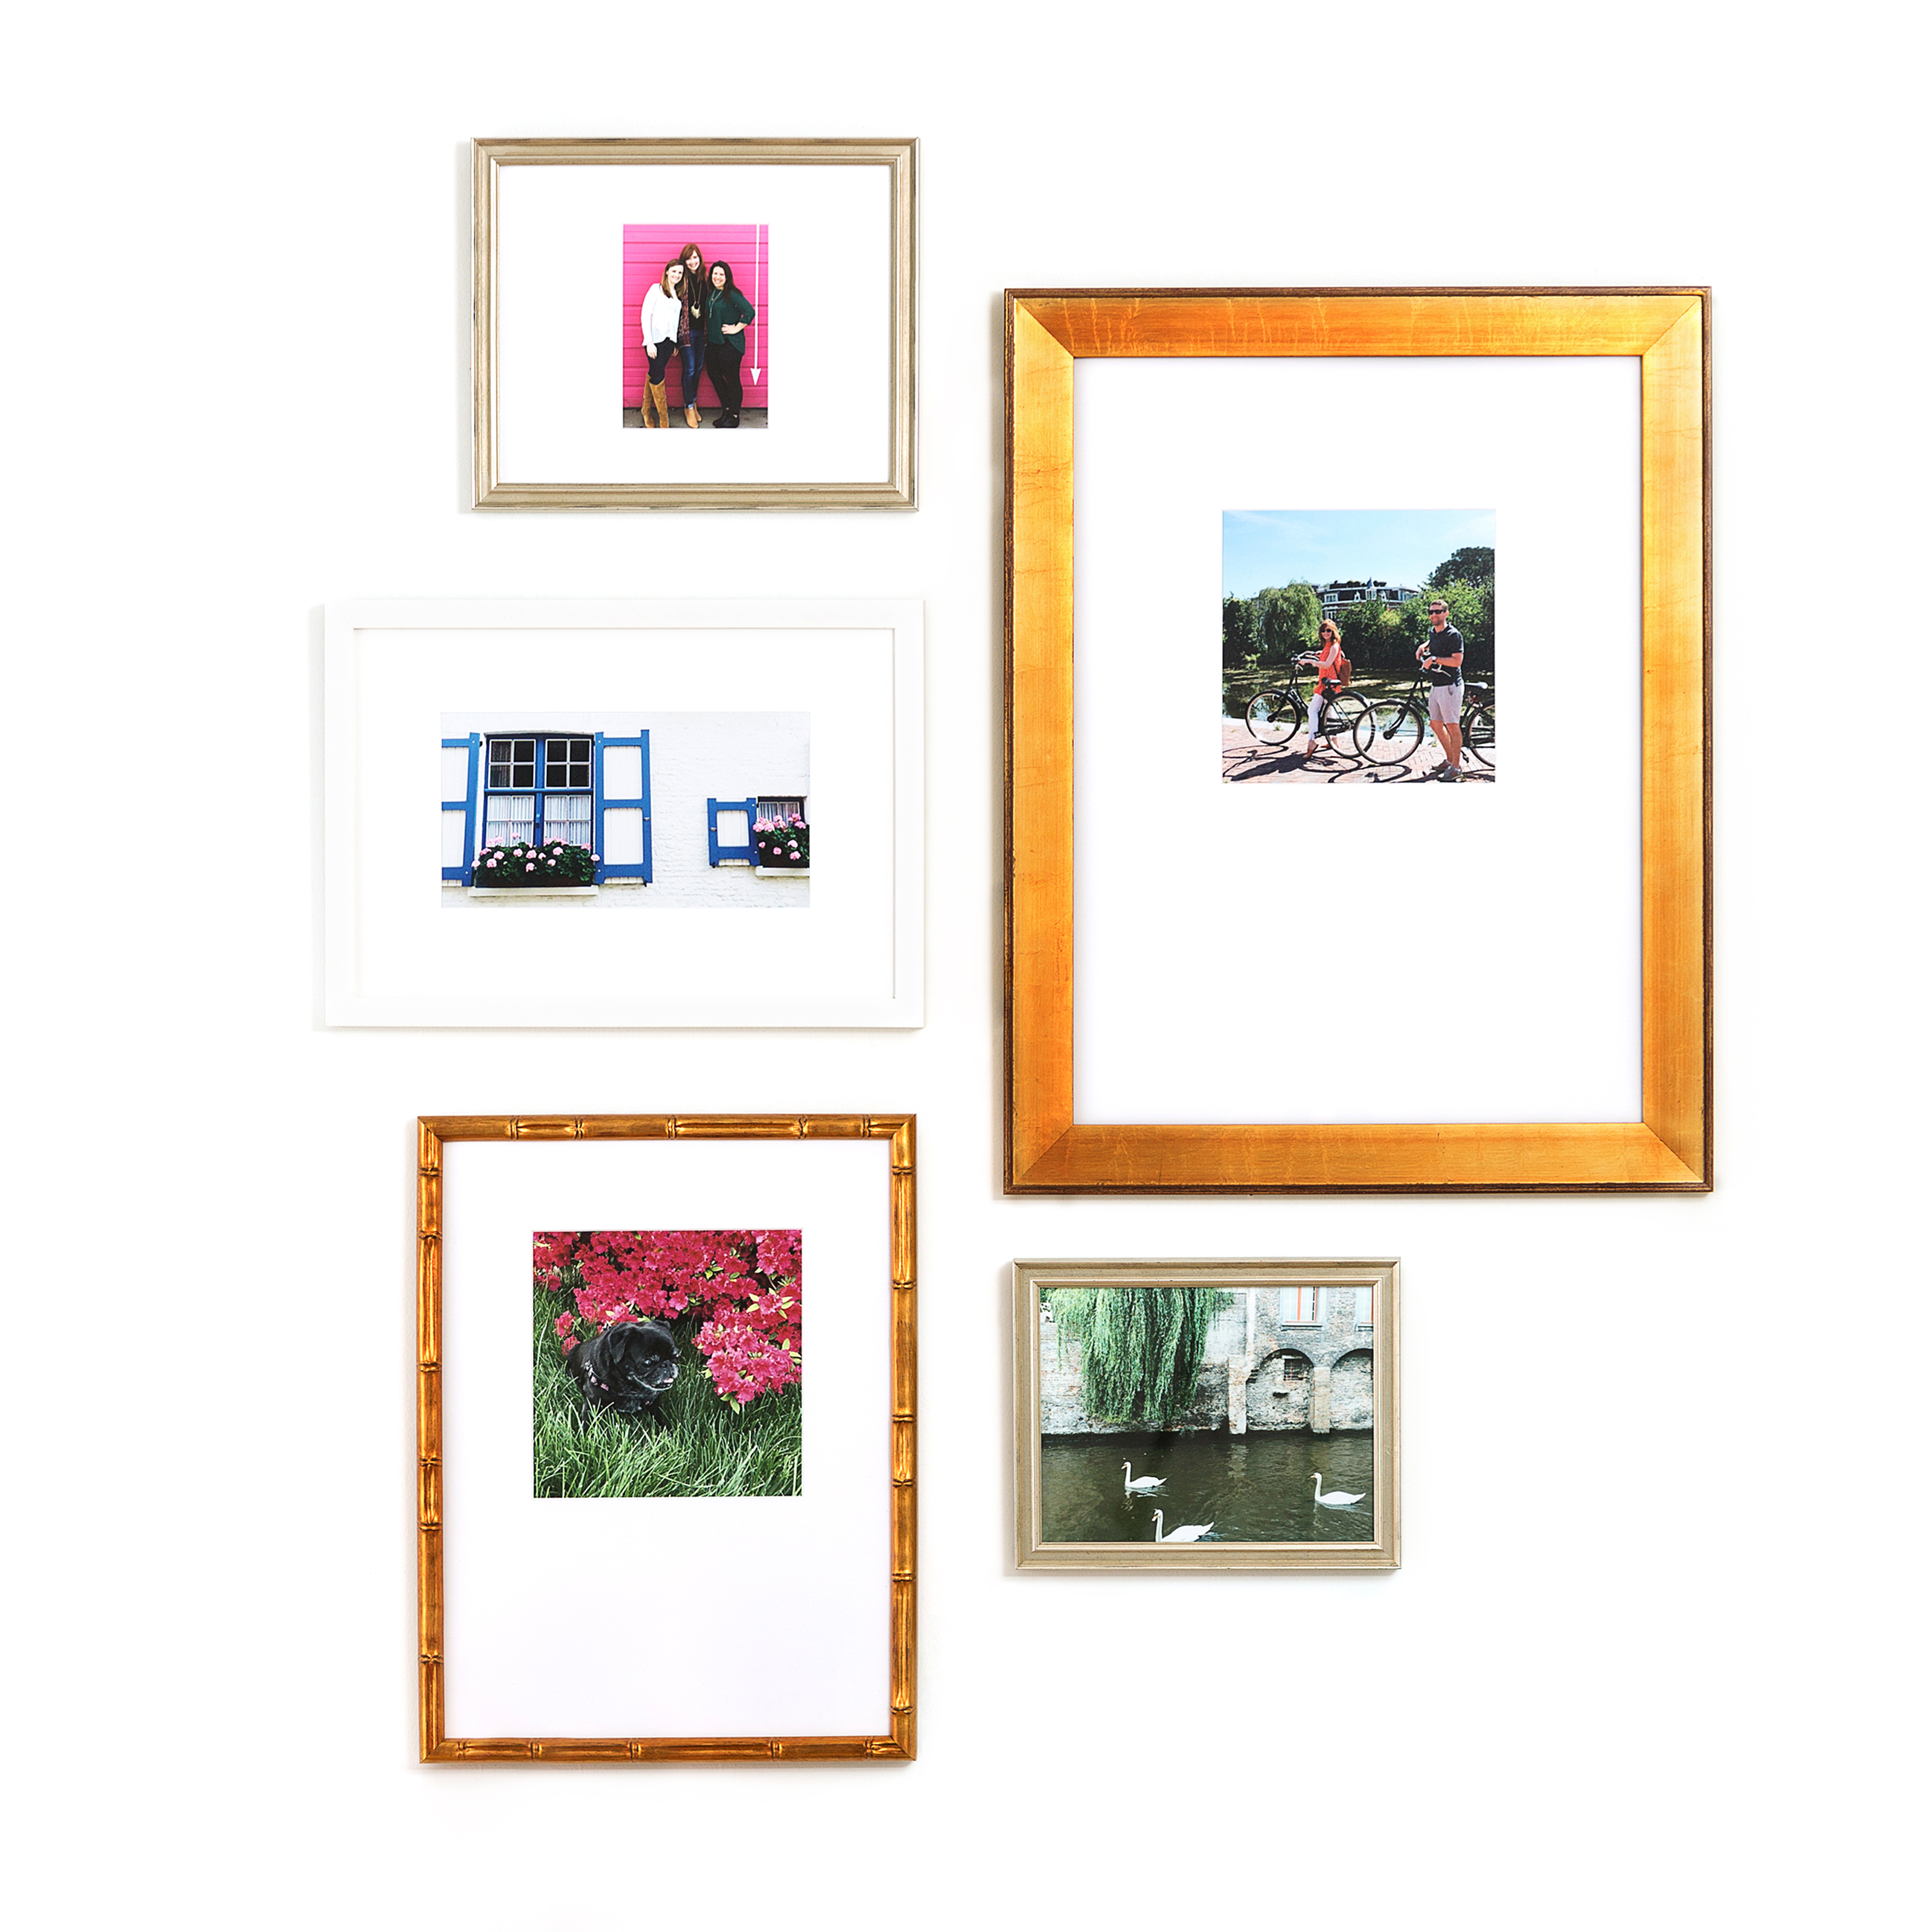 How to Choose Photos for Your Gallery Wall